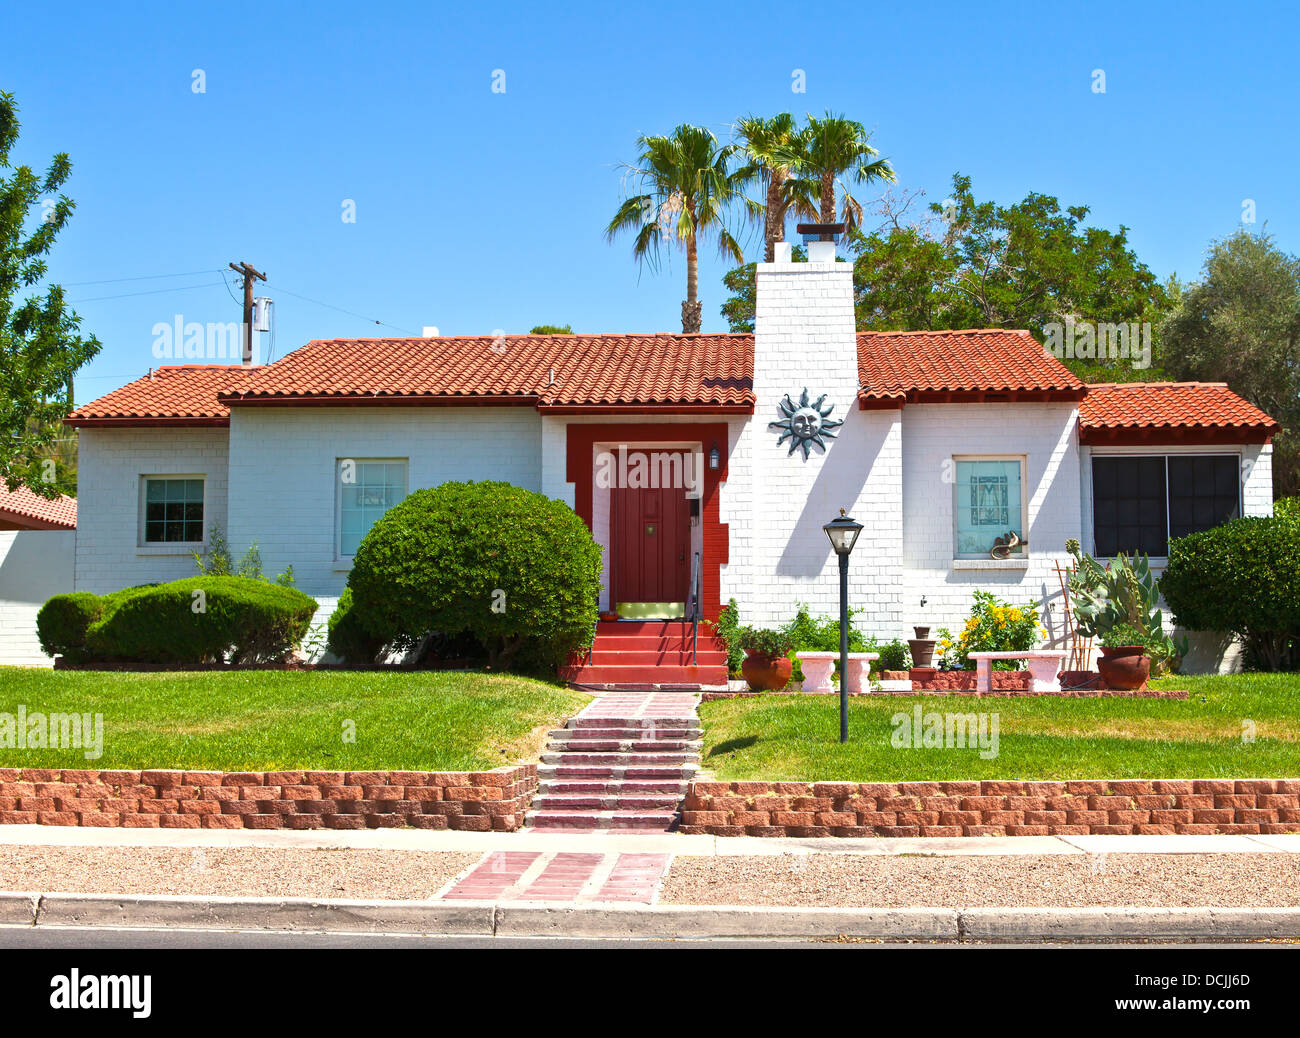 A manicured residential home in Boulder city Nevada. - Stock Image